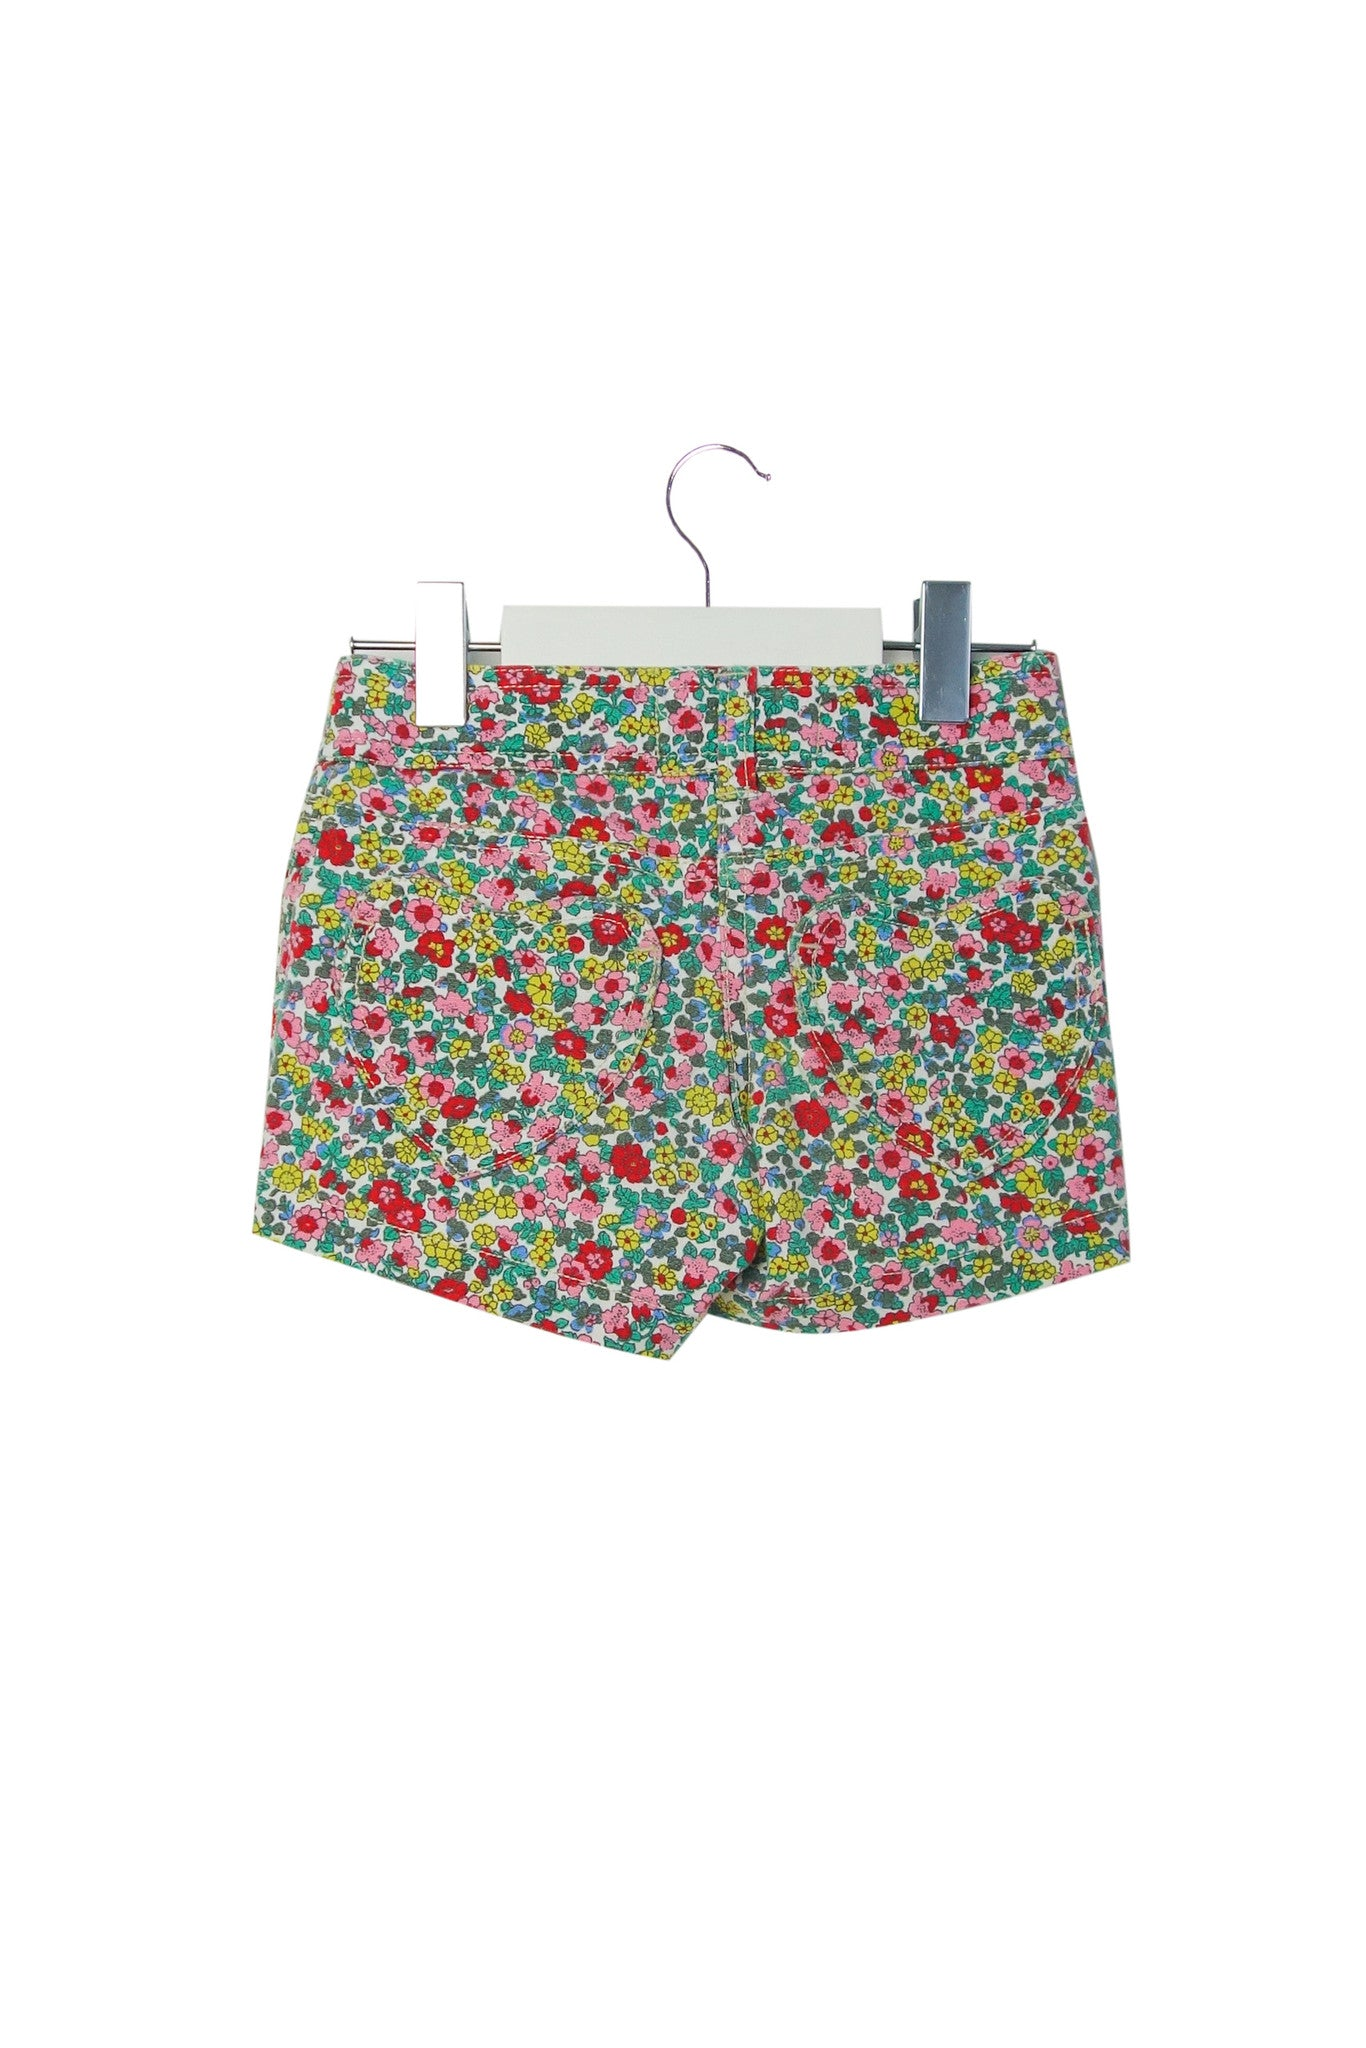 10003219 Boden Kids~Shorts 3T at Retykle